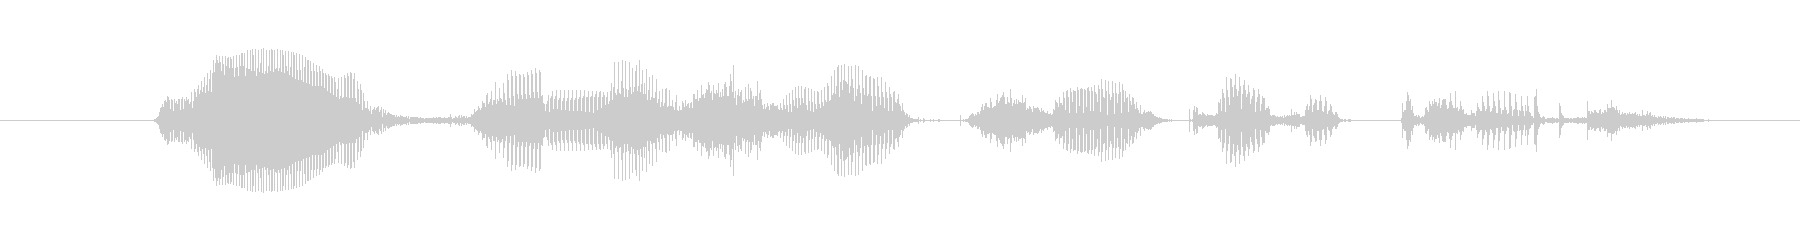 I've already talked about it (women, girls)'s unreproduced waveform